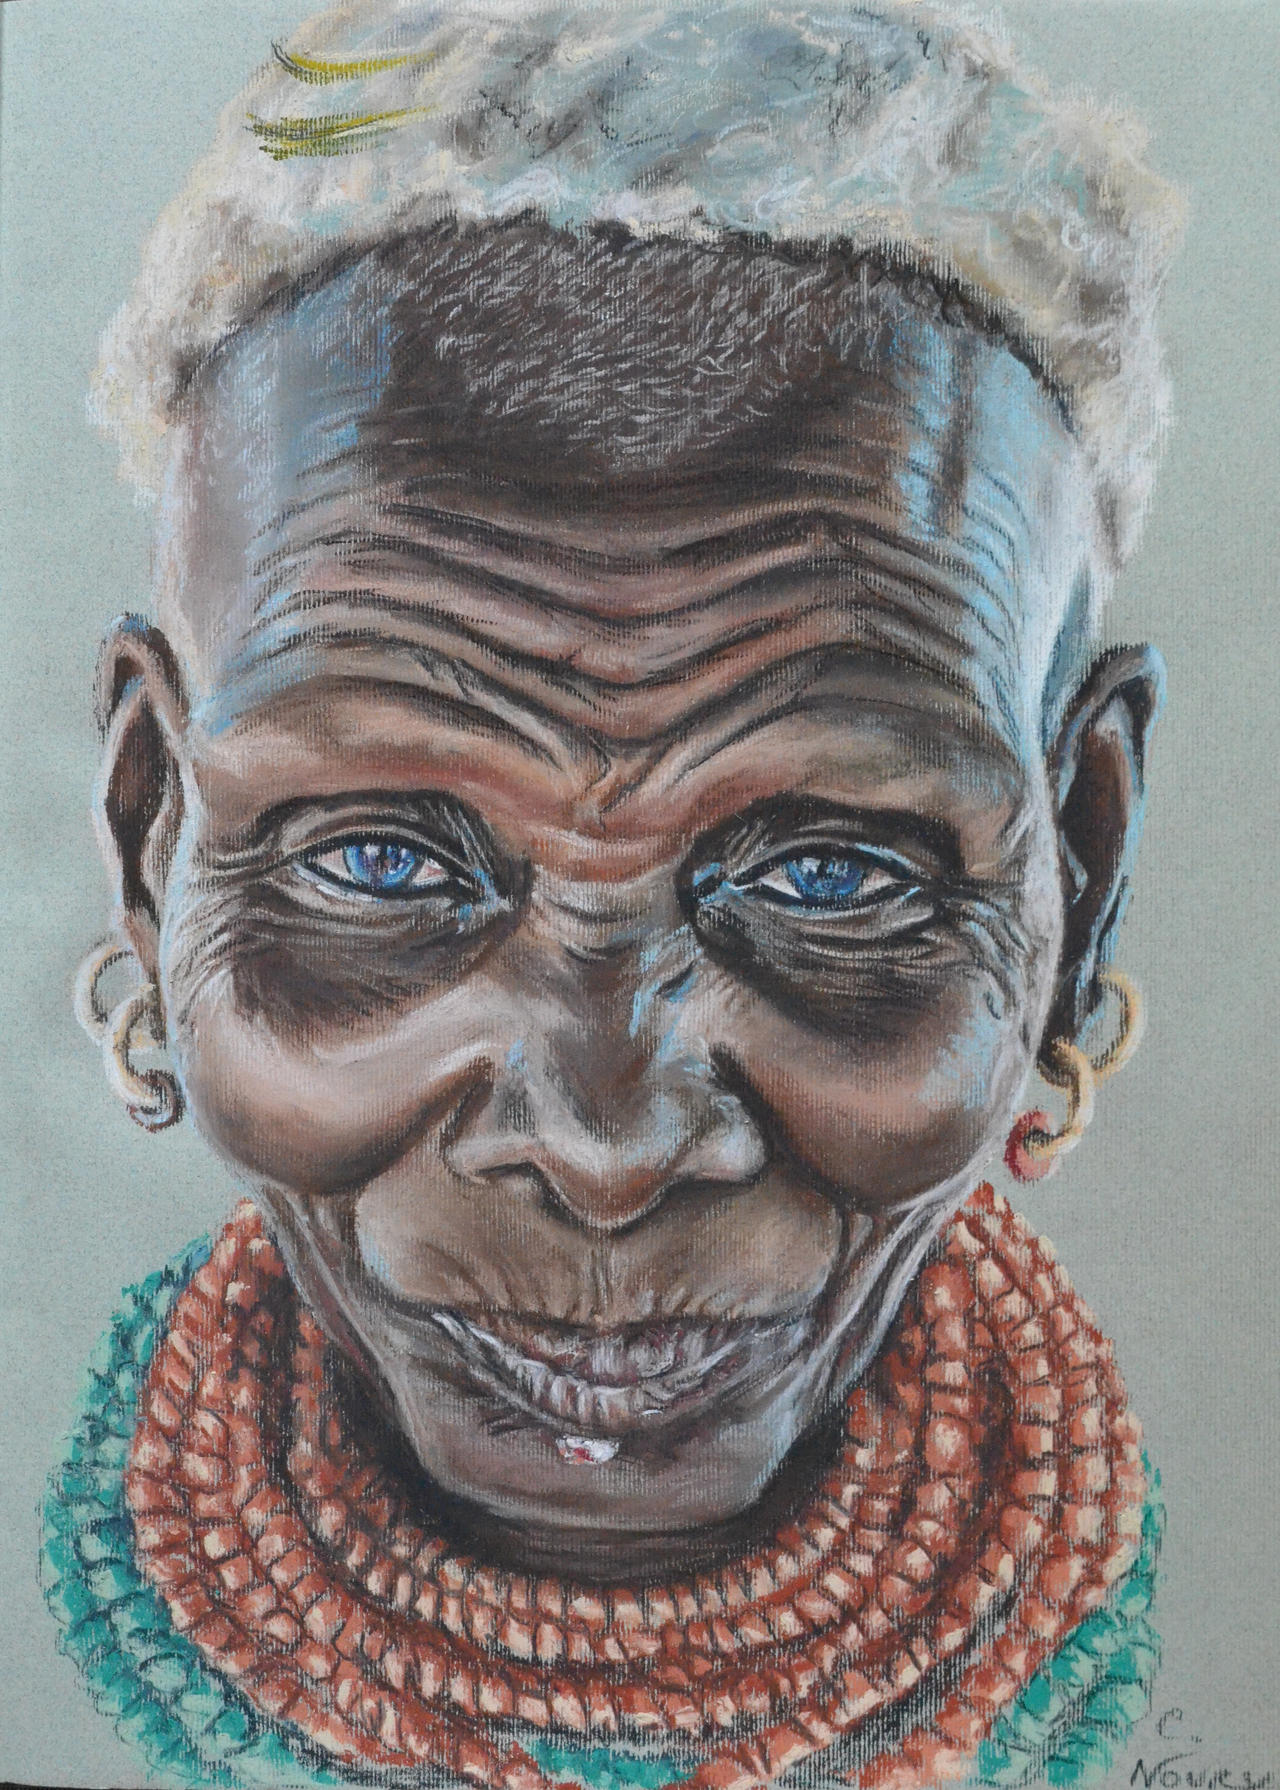 Vieille femme noire, Old black woman by Andromaque78